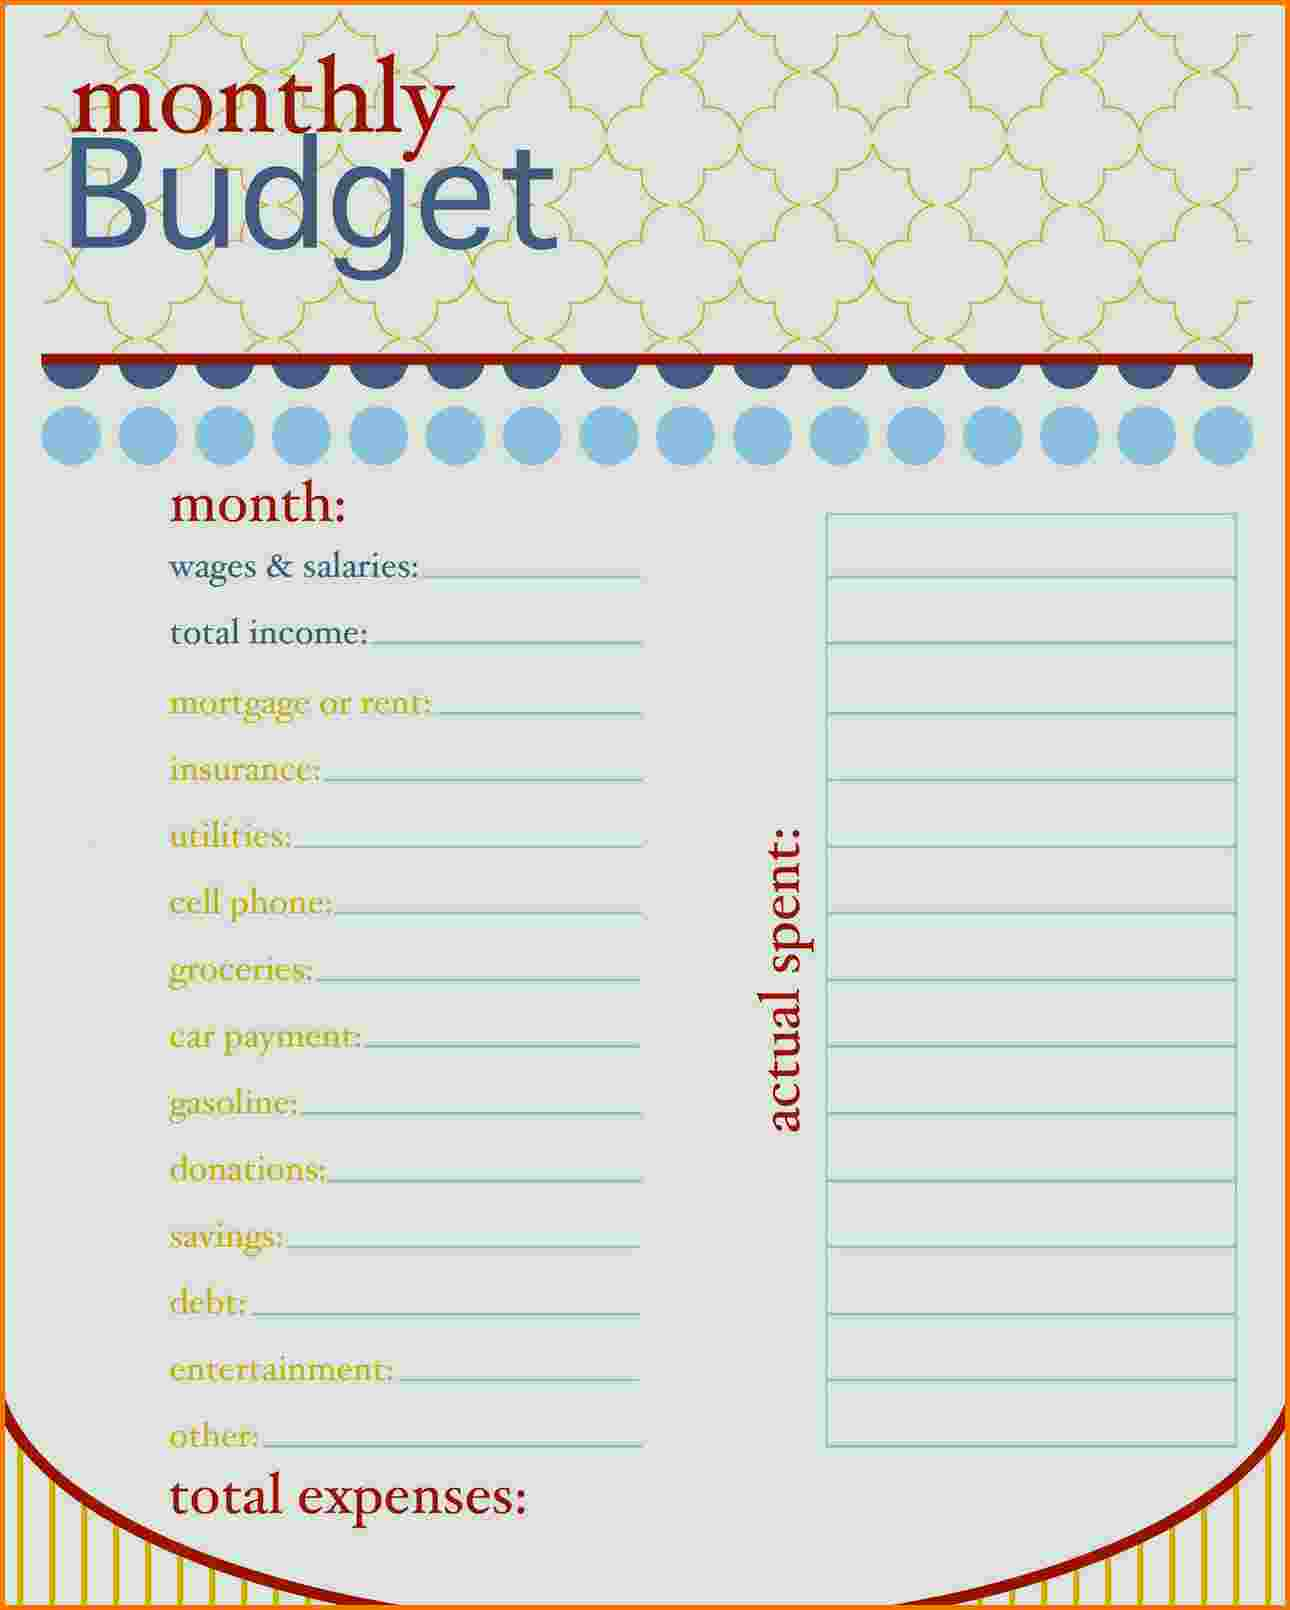 How To Organize Your Finances Spreadsheet Regarding 10 Life Changing Budget Templates To Help You Organize Your Finances